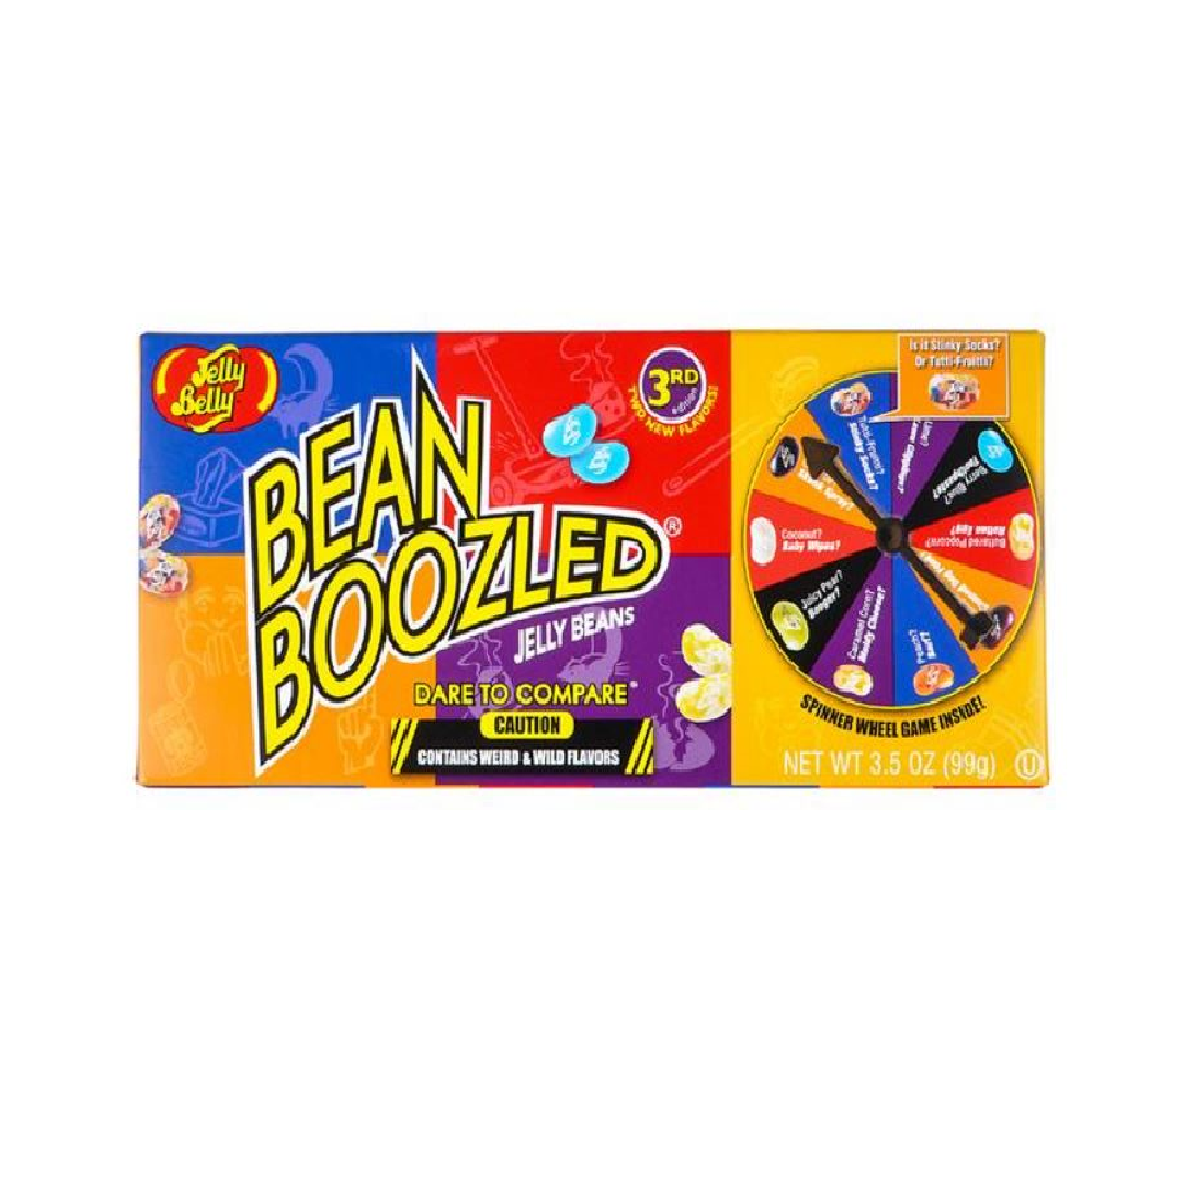 Bean Boozled Png & Free Bean Boozled.png Transparent Images.